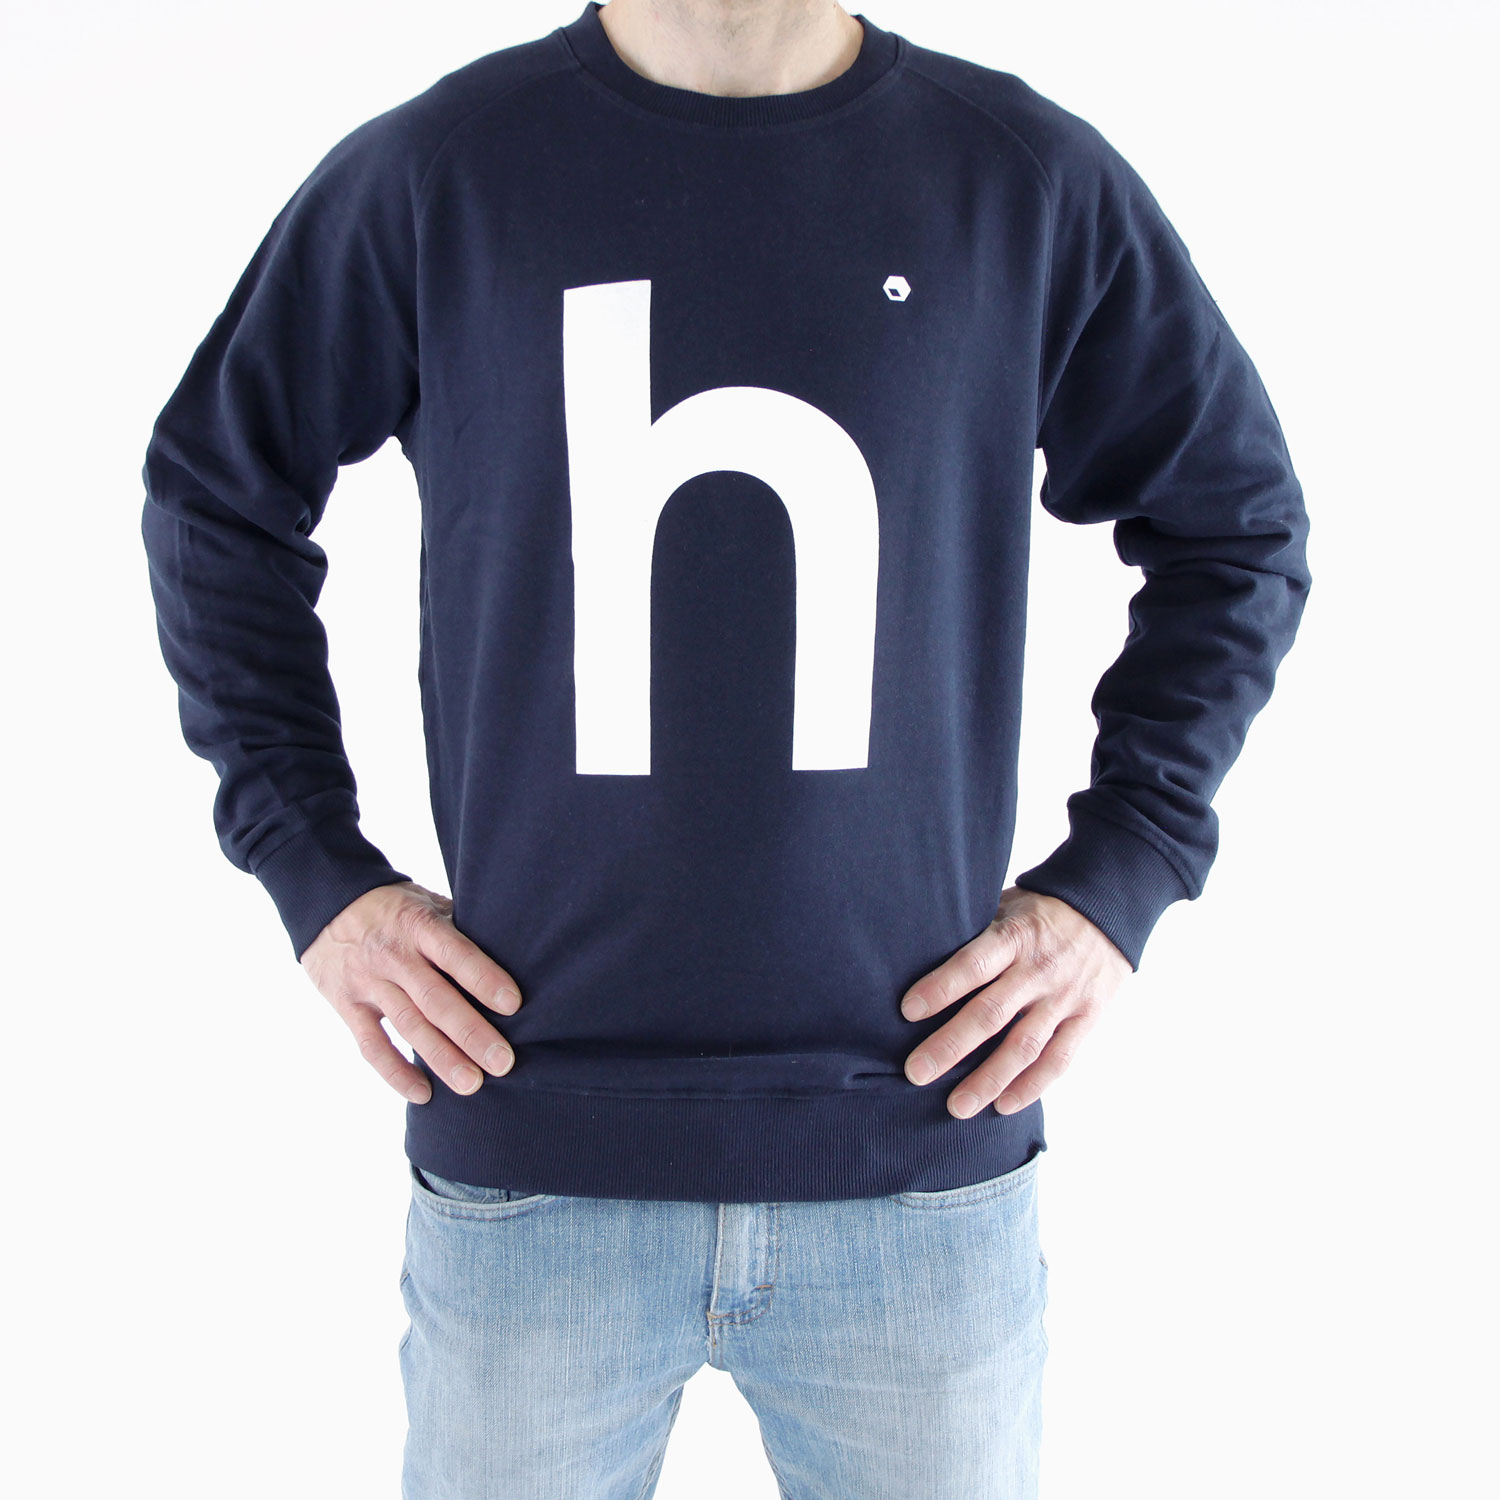 Flathold-apparel-sweat-h-navy